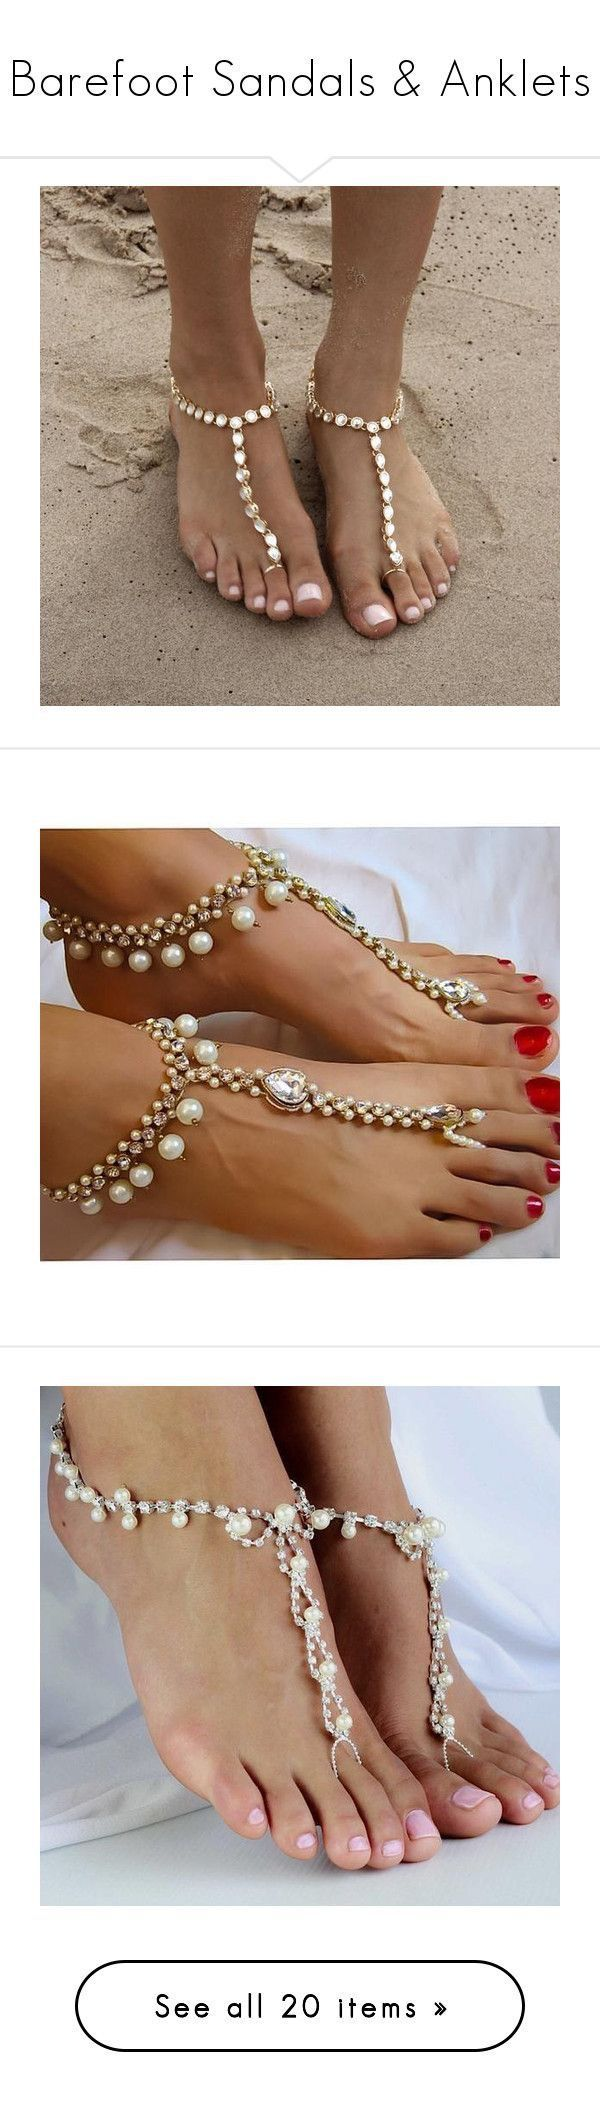 Barefoot Sandals & Anklets by bodykandycouture  featuring. women's fashion, jewelry, boho jewellery, Ankle chains, bohemian Bride, jewelry, payal anklet, gold, bohemian style jewelry, boho style jewelry and gypsy wedding shoes beach foot jewellery BareFoot sandals. BodyKandyCouture.com